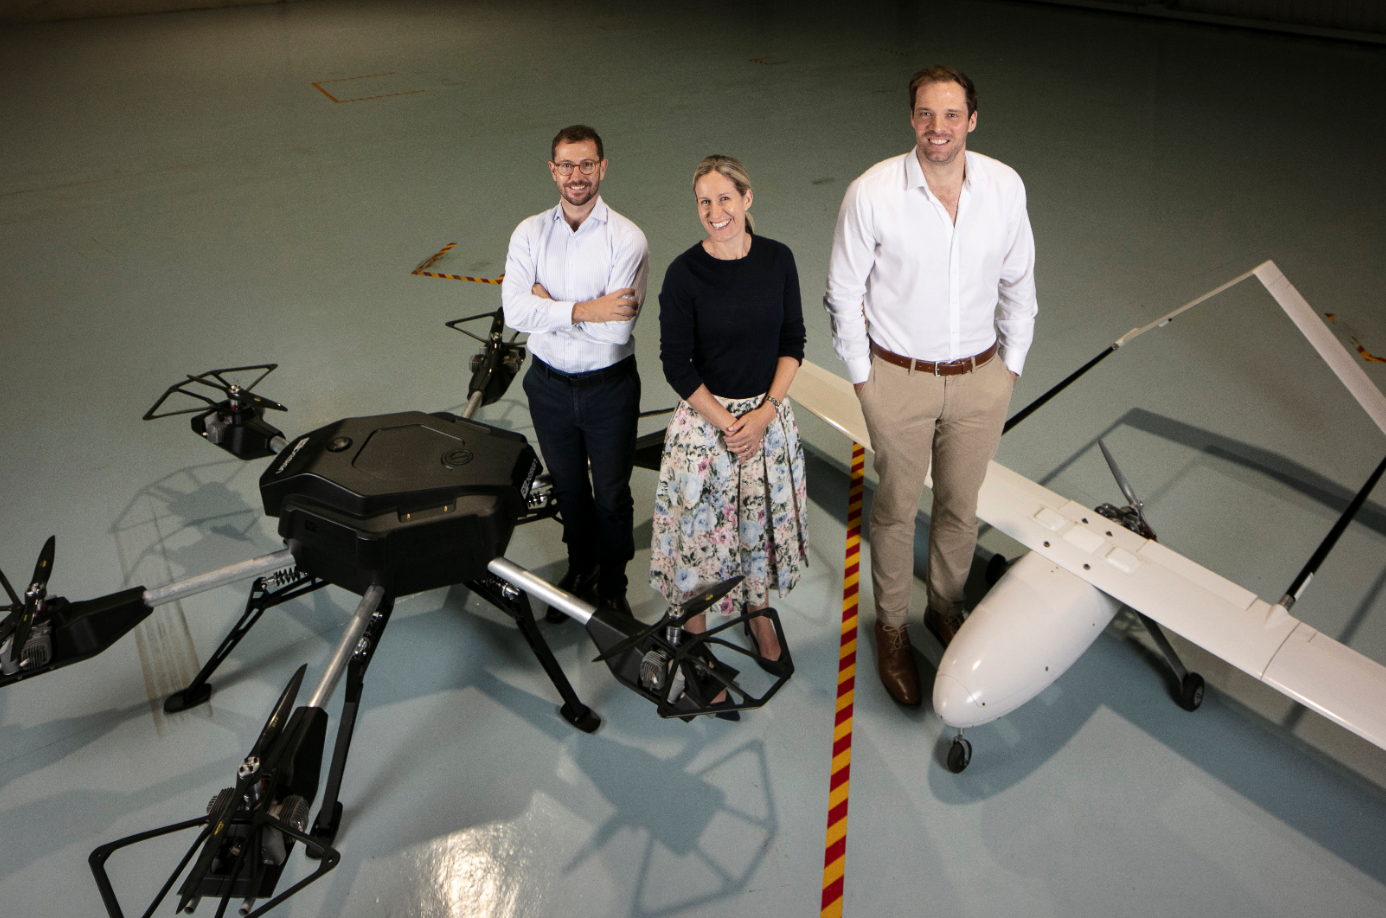 From left David Tozer, Chairman, Jolaine Boyd, COO and Ben Harris, CEO, National Drones